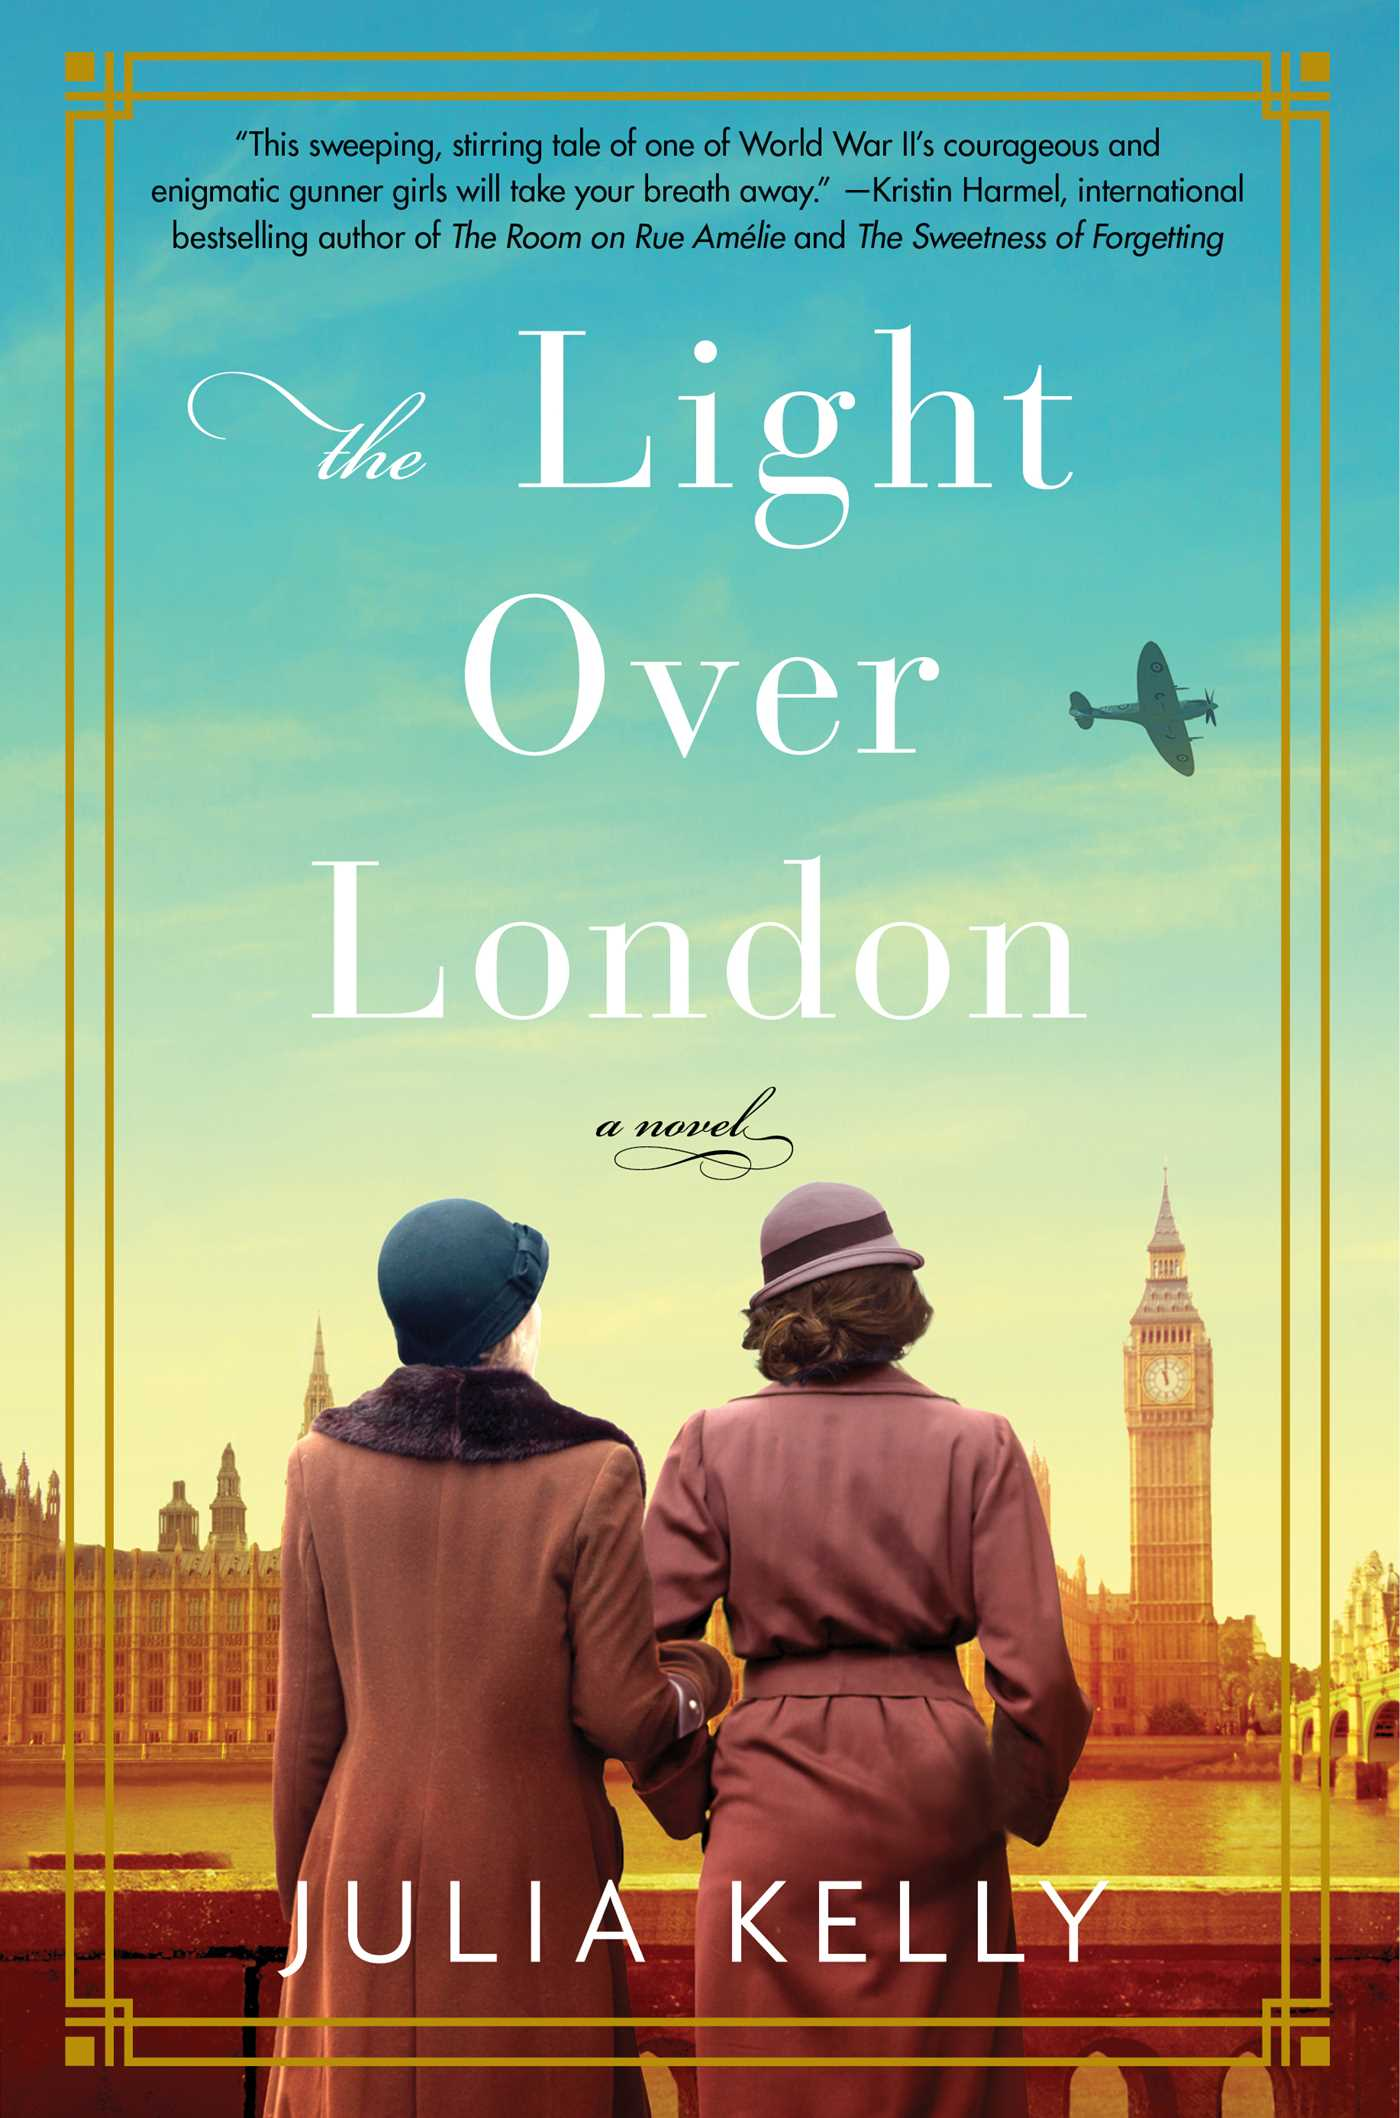 The light over london 9781501196416 hr